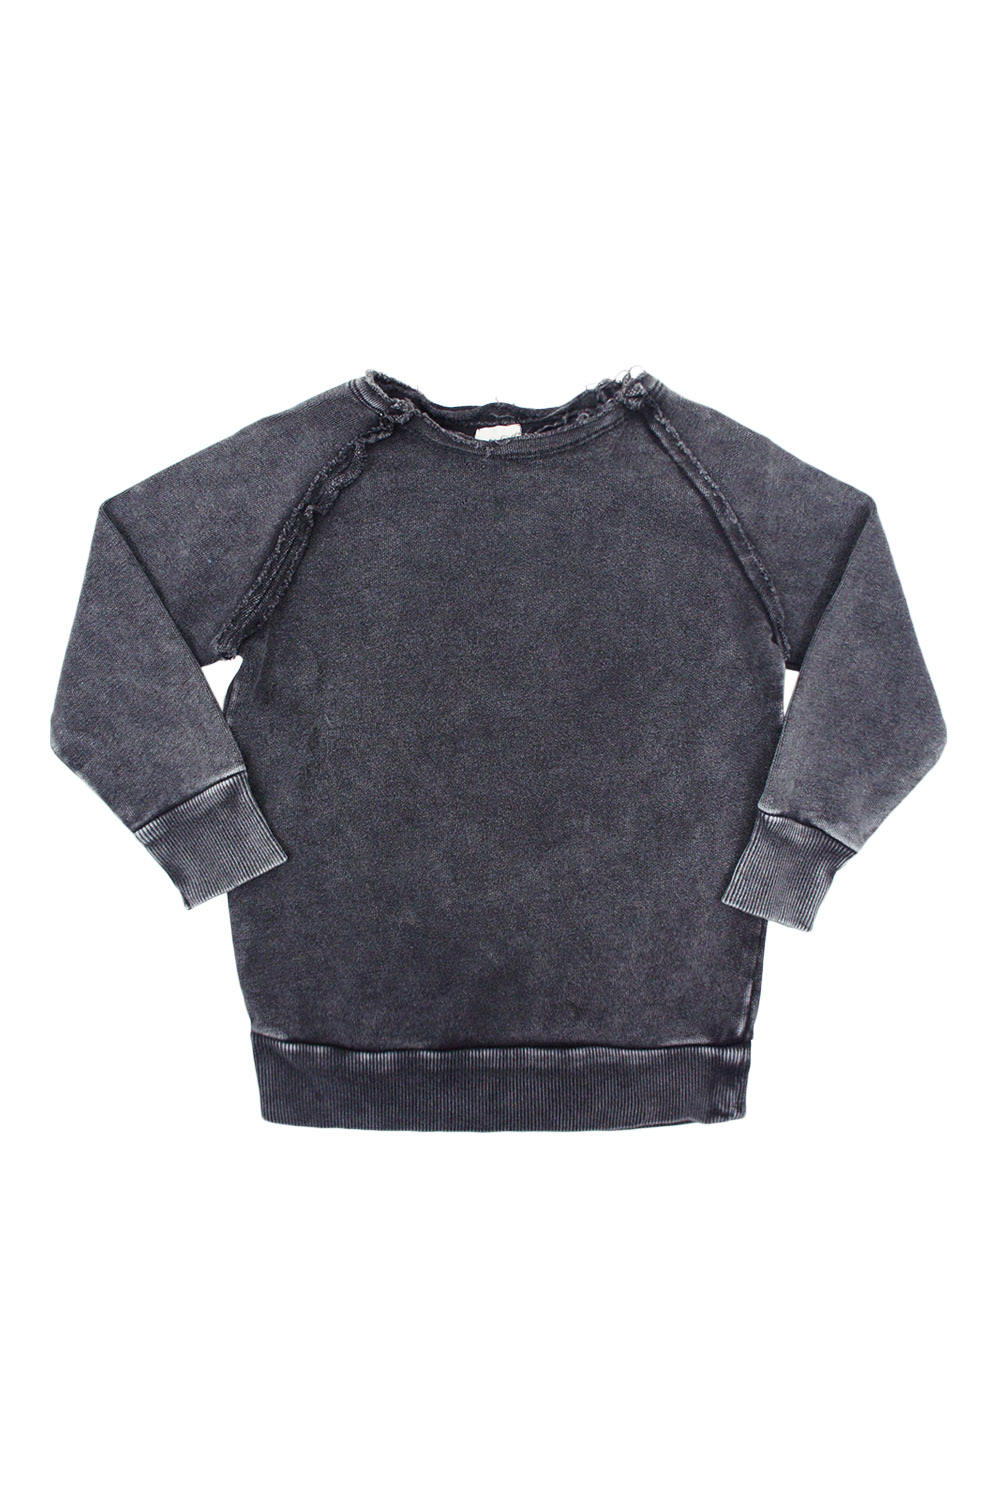 Analogie Black Wash Denim Raglan Sweater